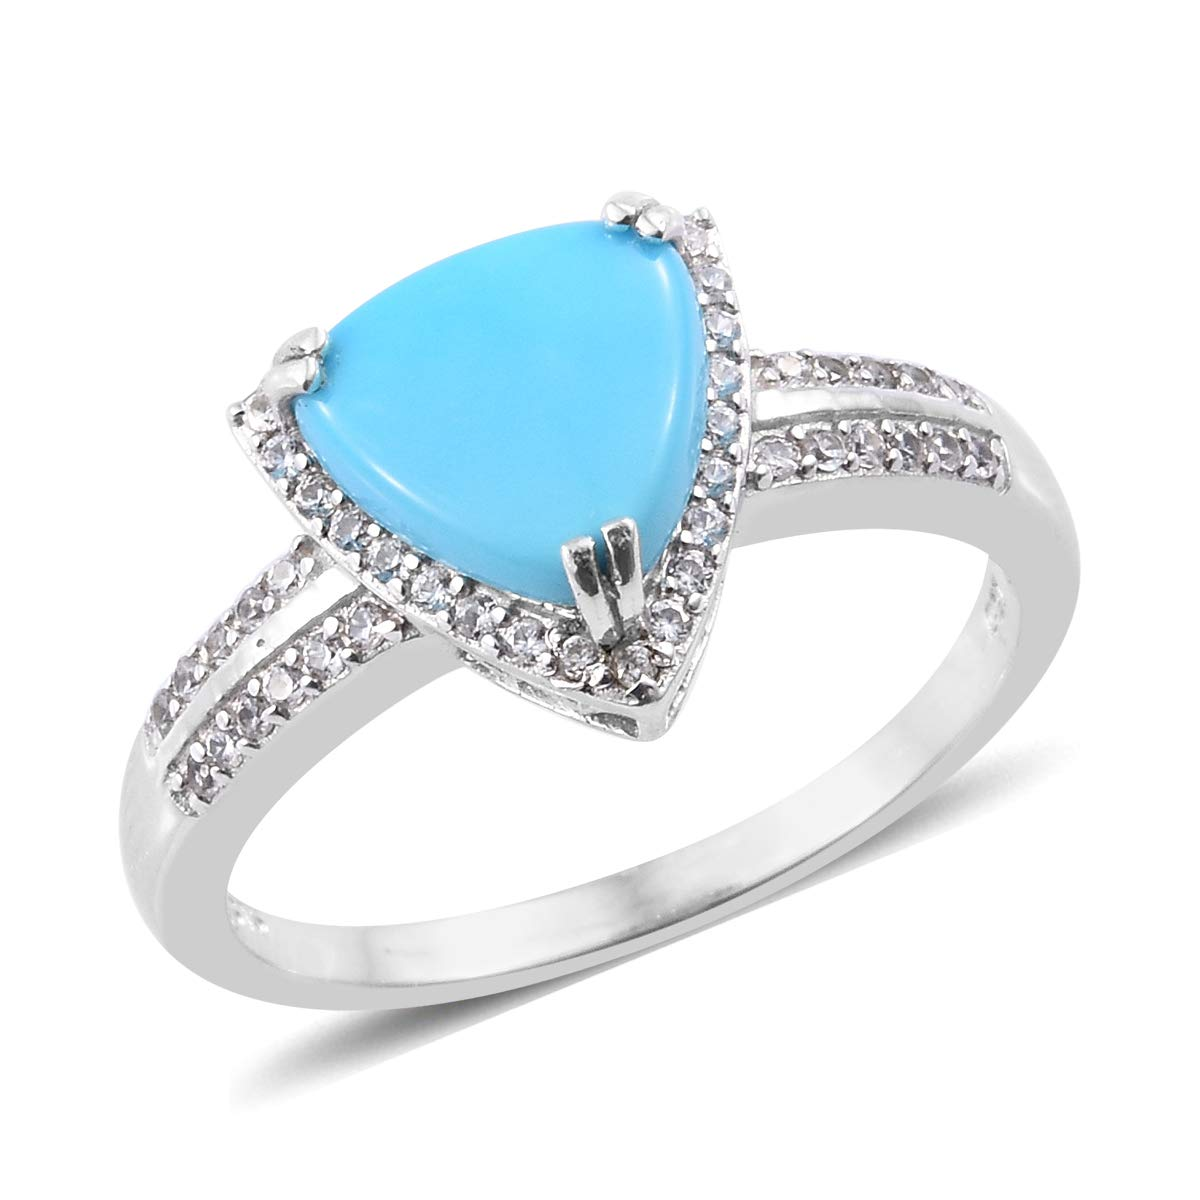 fea794d2e66539 Amazon.com: Halo Ring 925 Sterling Silver Platinum Plated Sleeping Beauty Turquoise  Zircon Gift Jewelry for Women Size 10: Jewelry